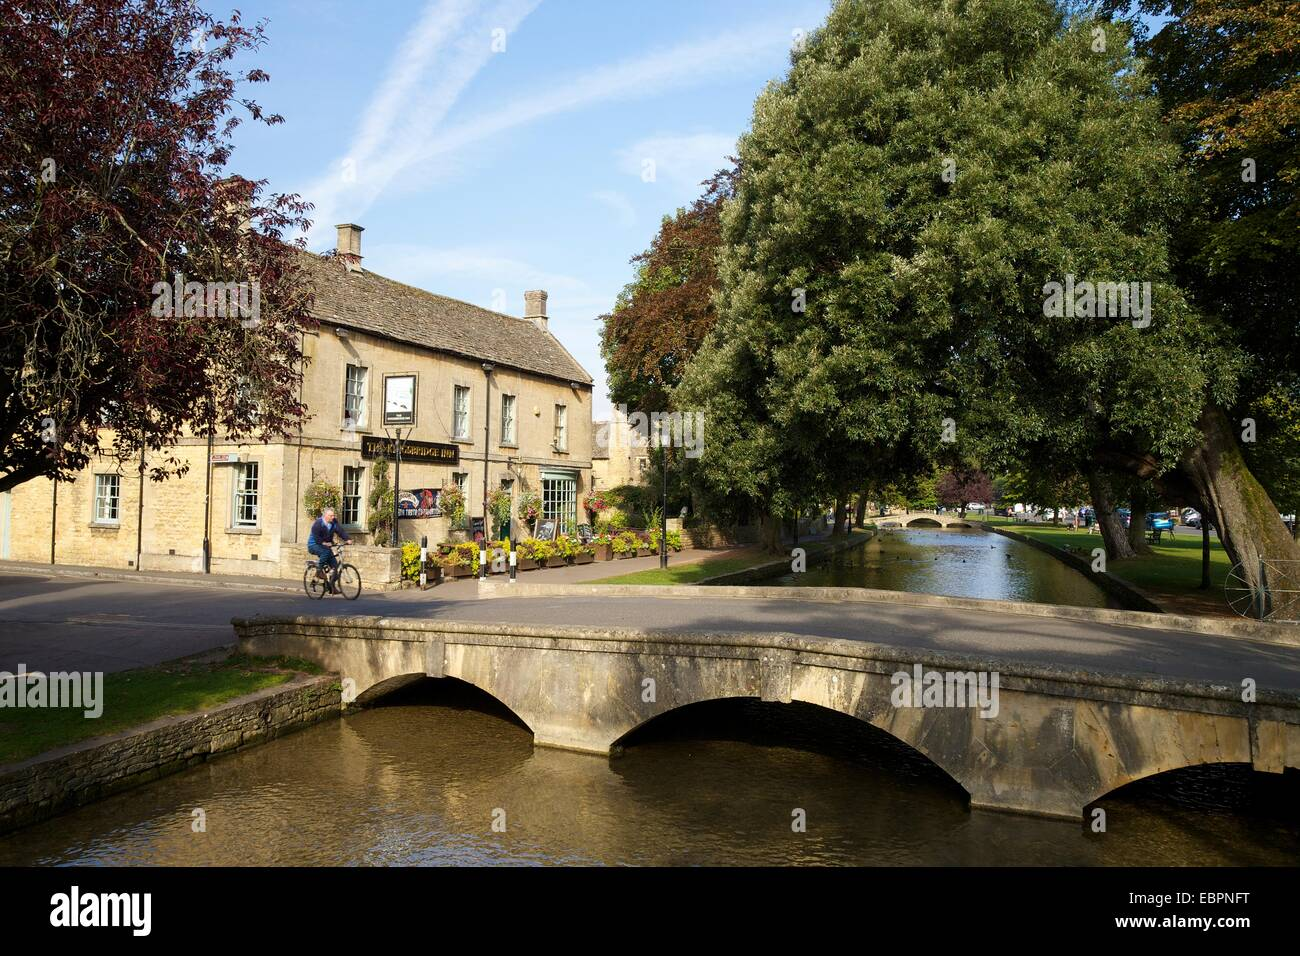 Bourton on the Water United Kingdom  City new picture : Kingsbridge Inn And River Windrush, Bourton on the water, Cotswolds ...